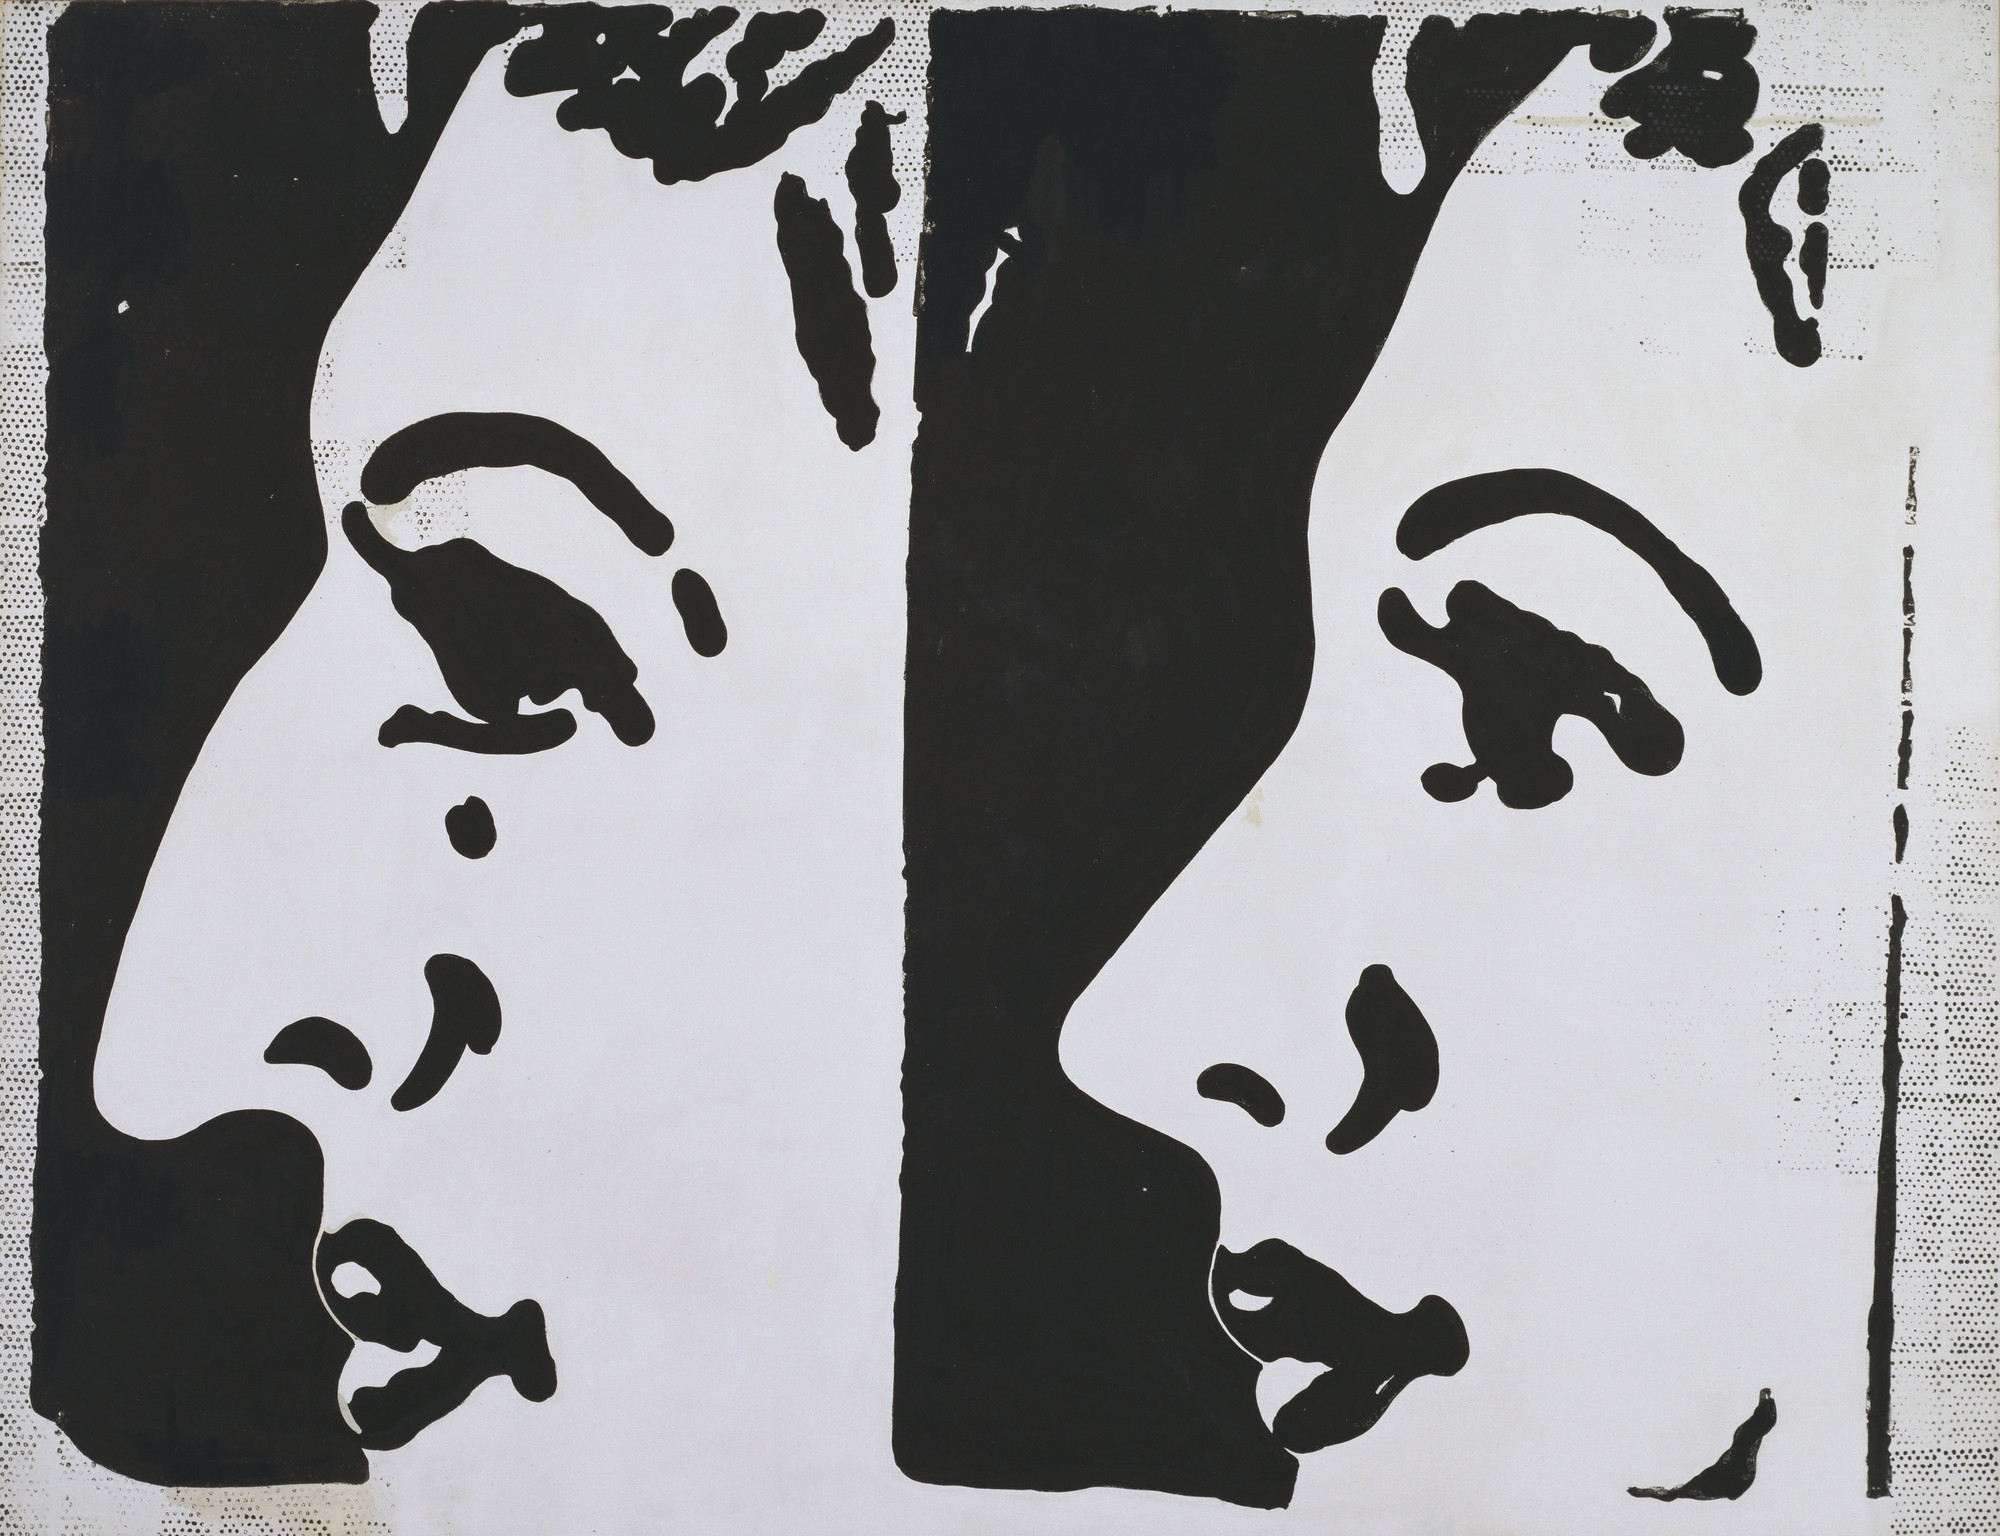 Andy Warhol. Before and After. 1961